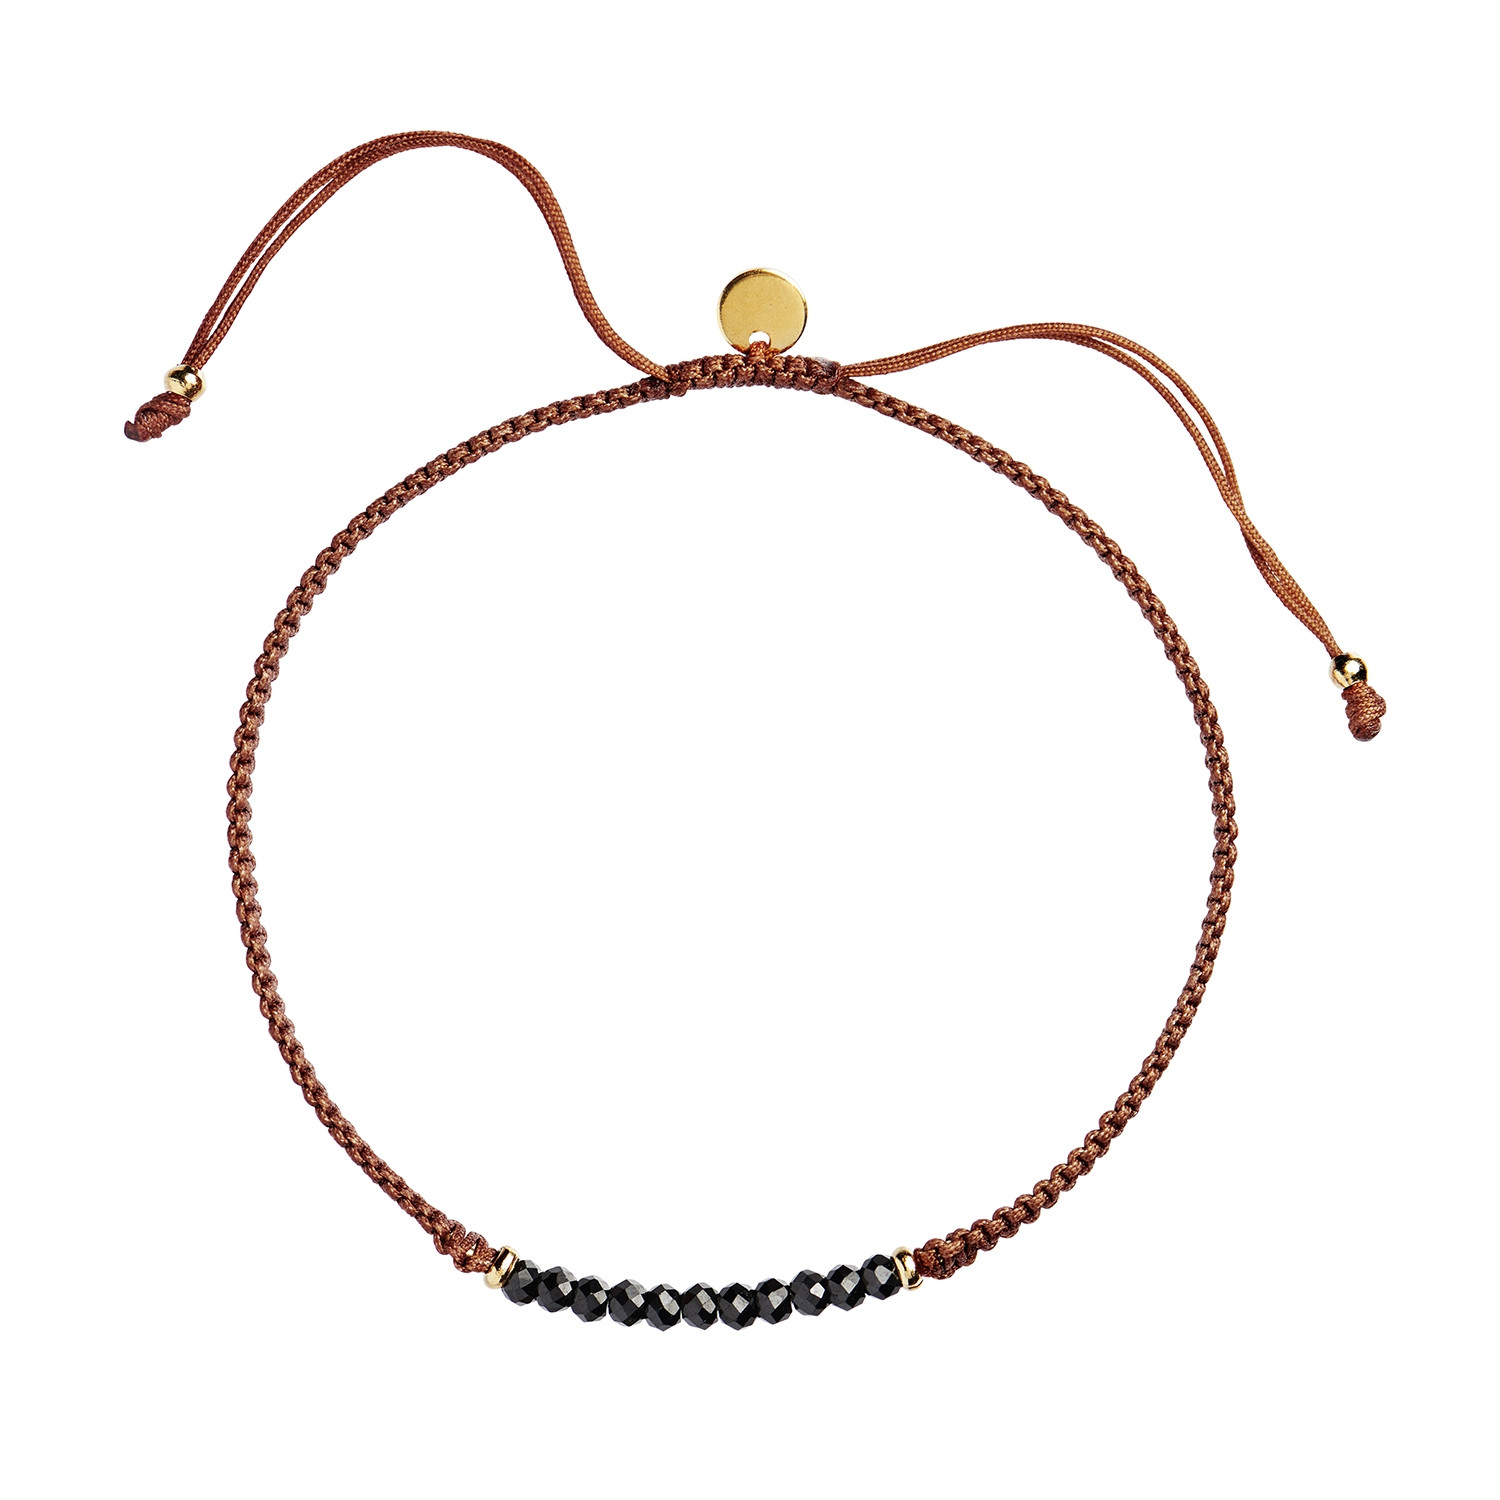 Candy Bracelet - Black Spinel and Rust Ribbon